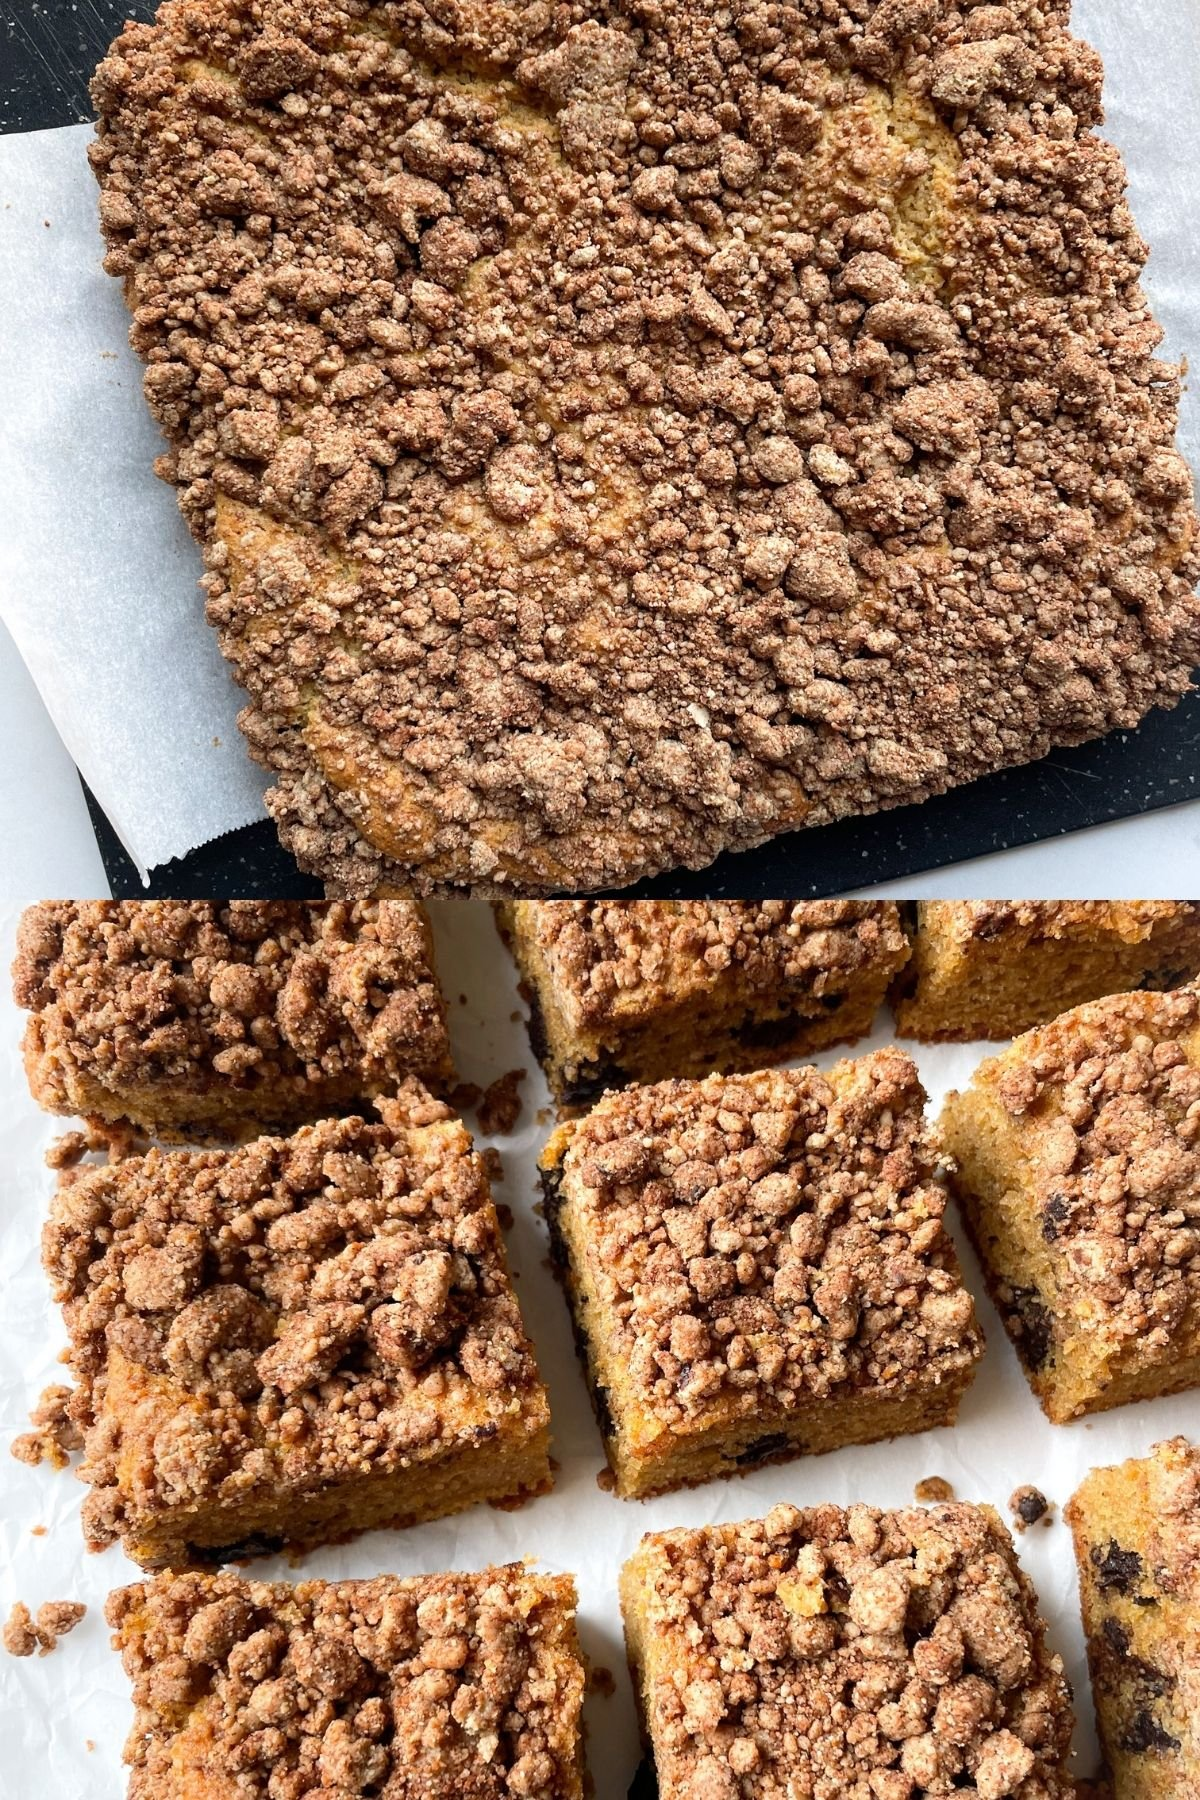 photo of coffee cake before sliced and one photo after it has been sliced